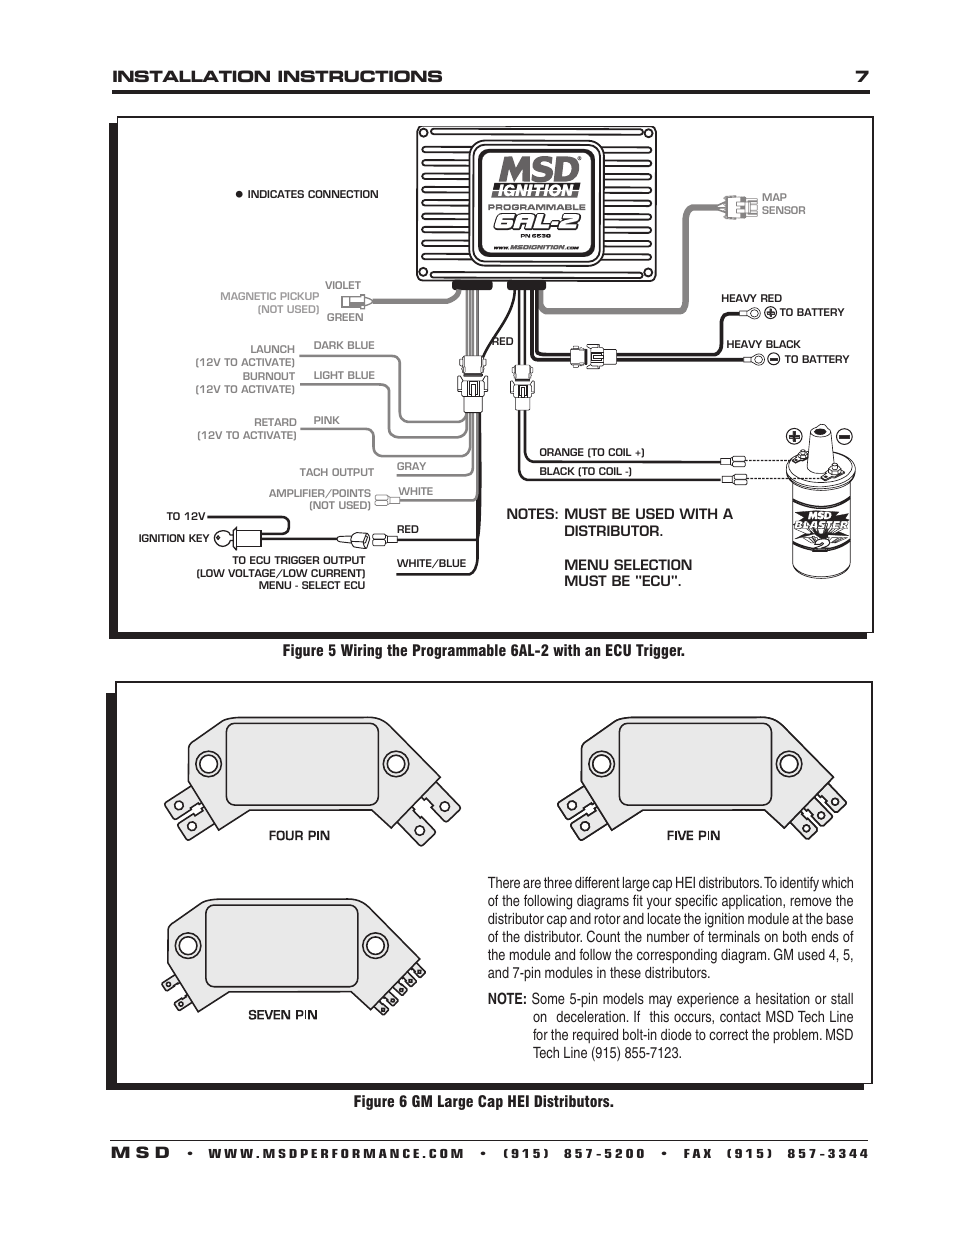 Msd 6al 2 Wiring Diagram 24 Images Mustang Custom Diagrams Manual 6530 Digital Programmable Installation Page7 User